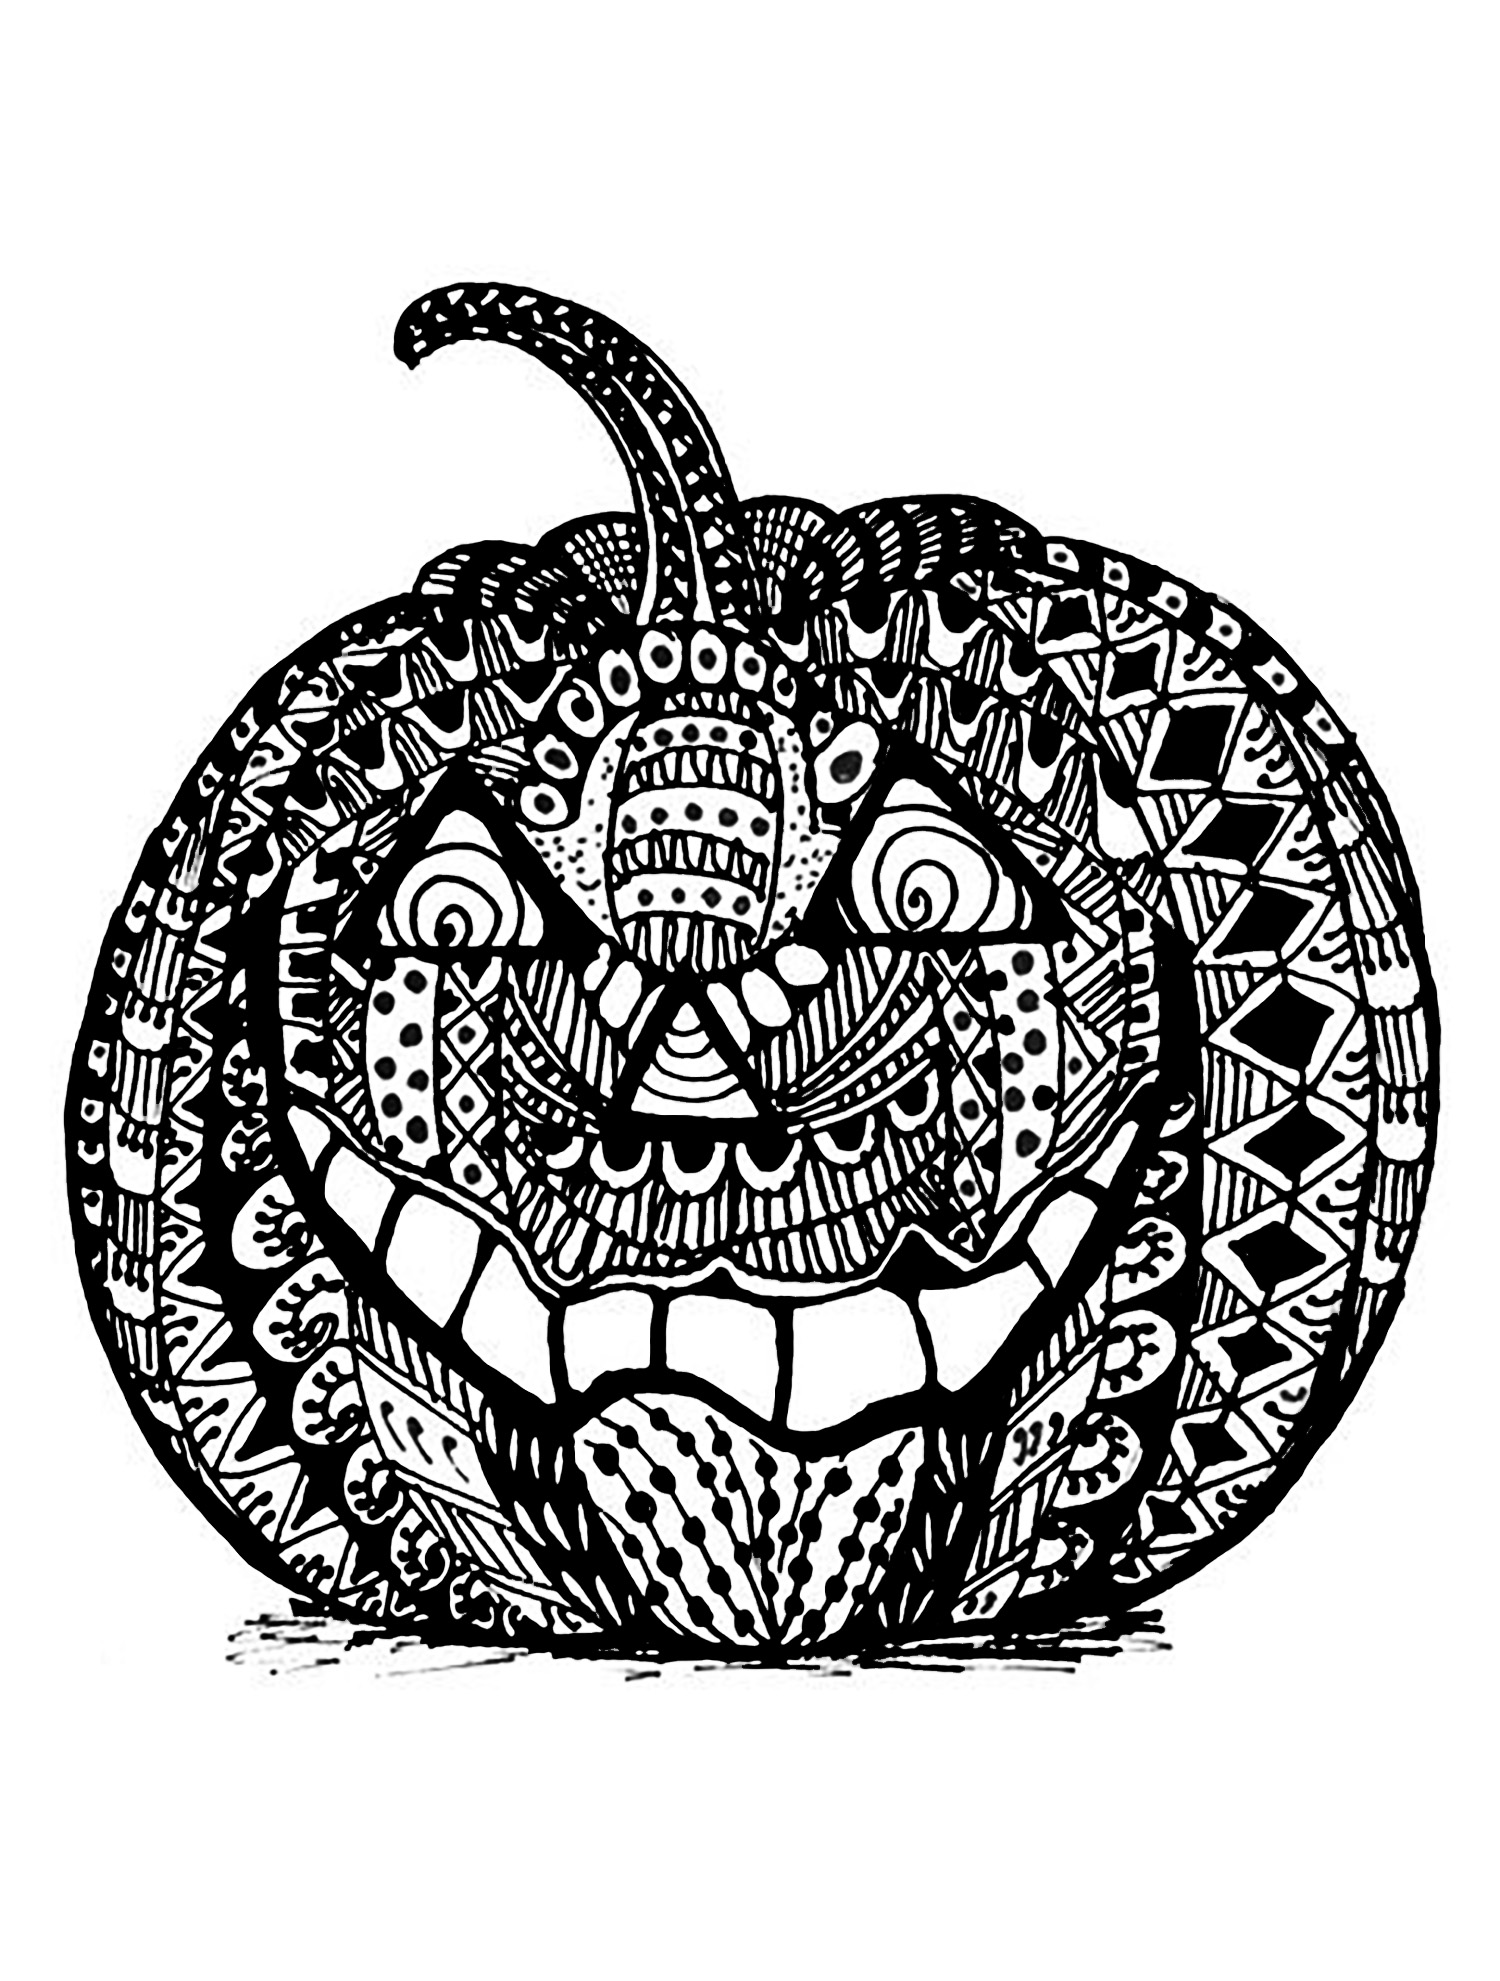 Coloring Page Halloween Zentangle Pumpkin A Drawing Representing